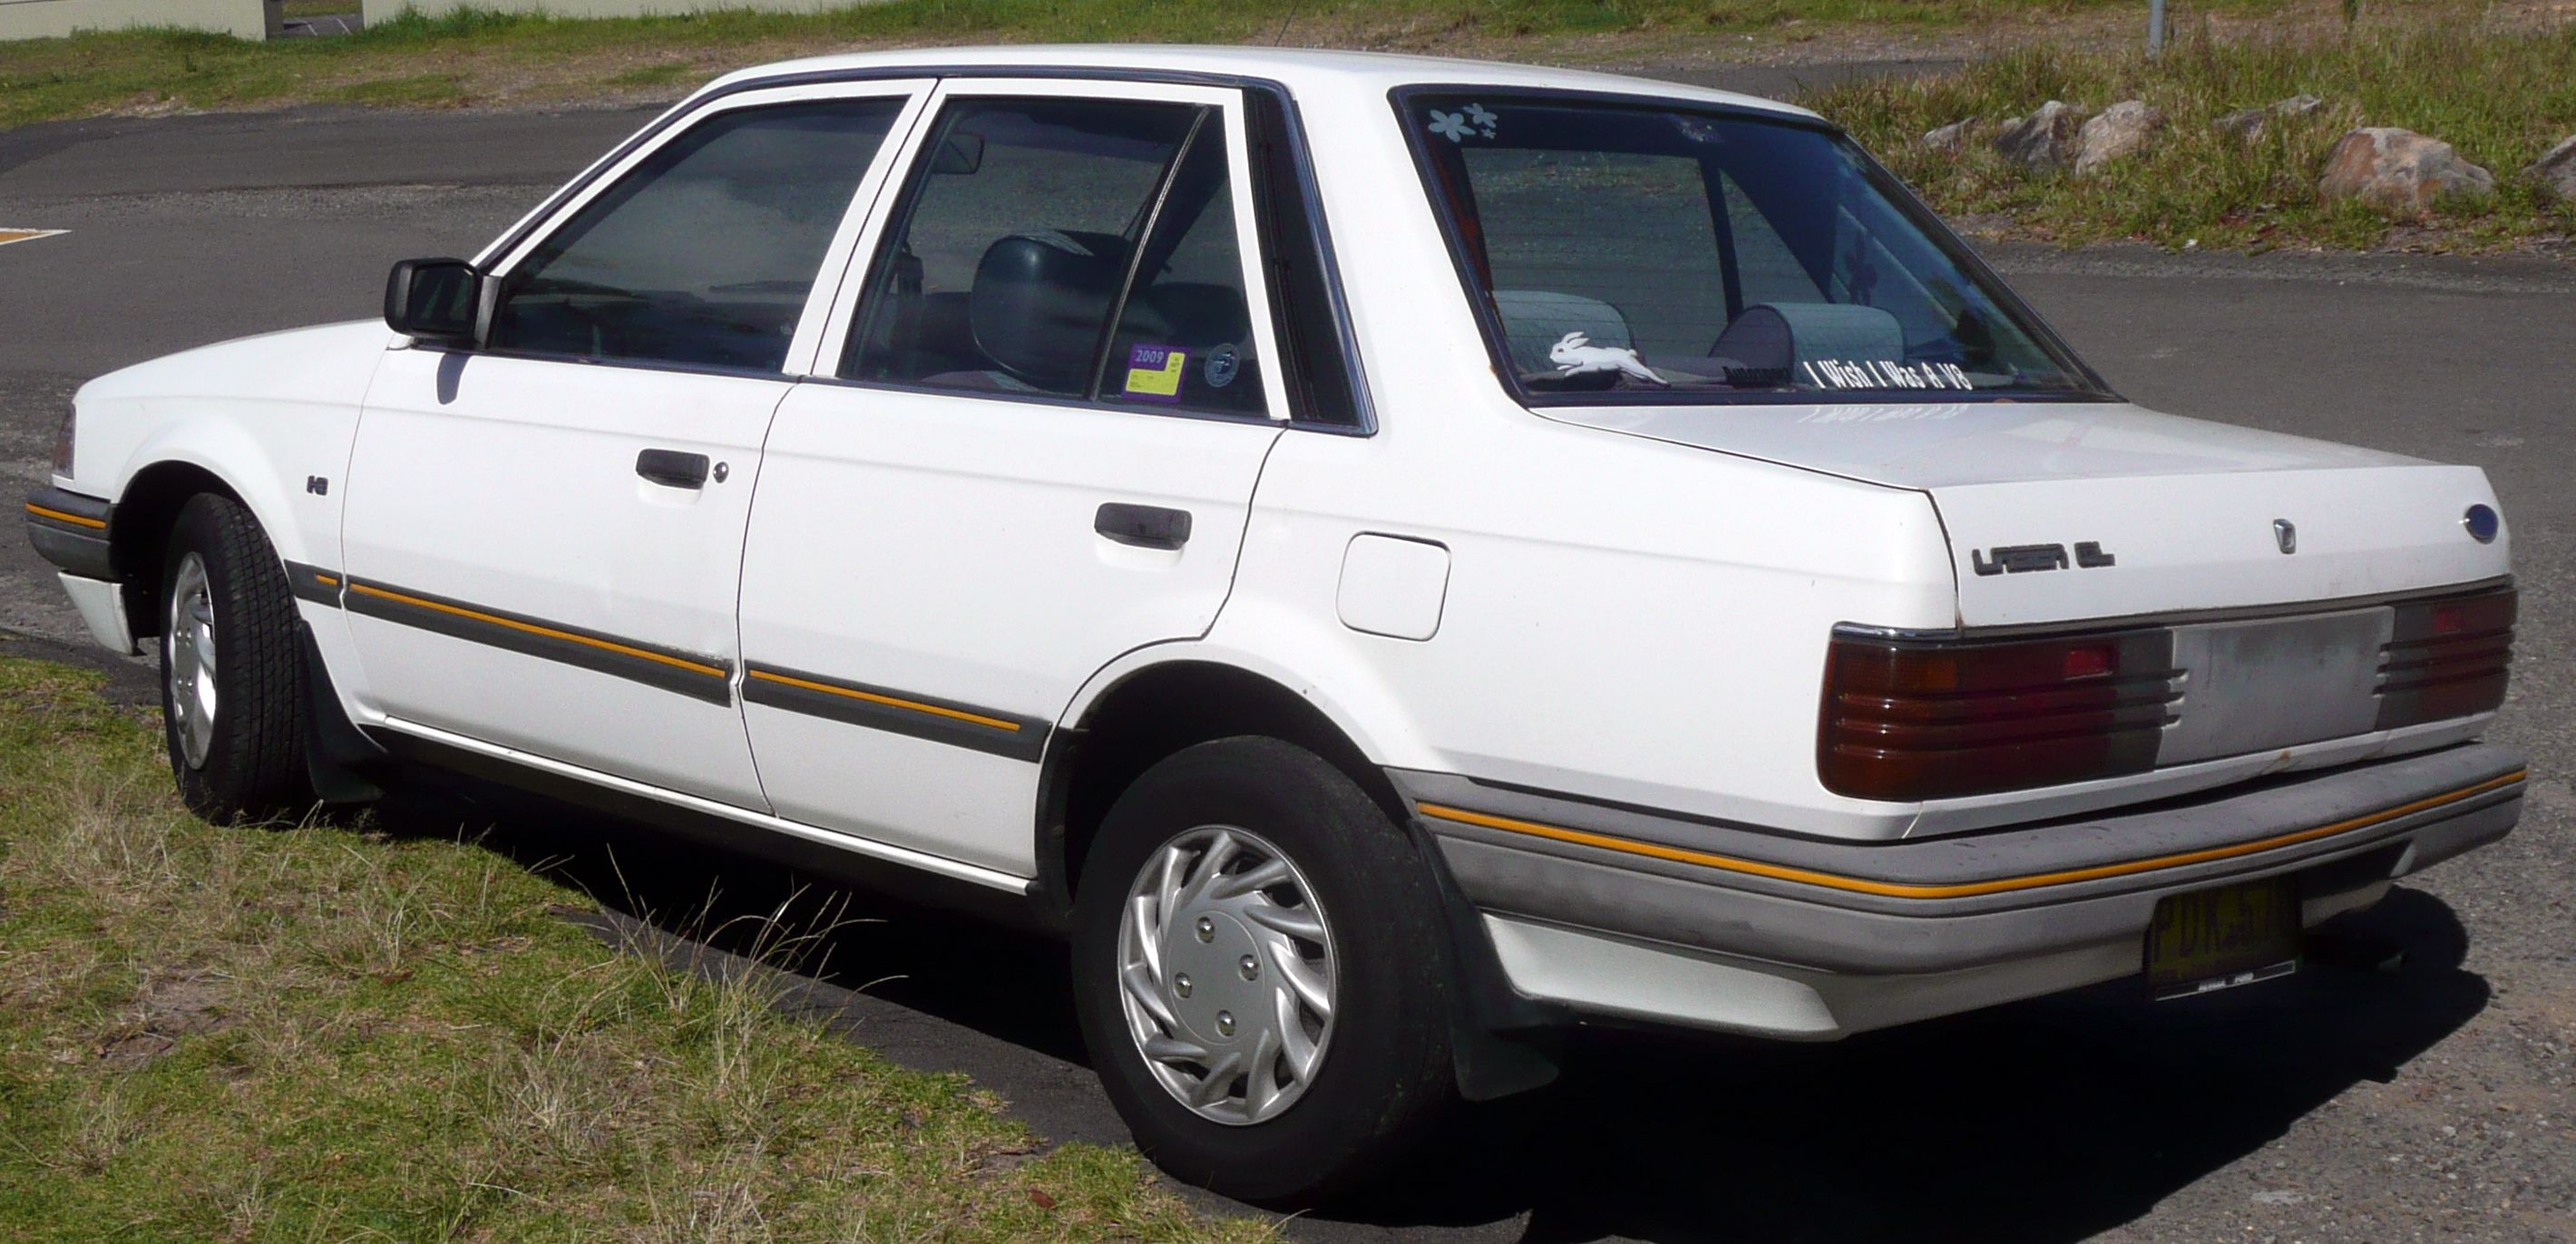 Bob S Car 1990 Ford Sedan Google Search